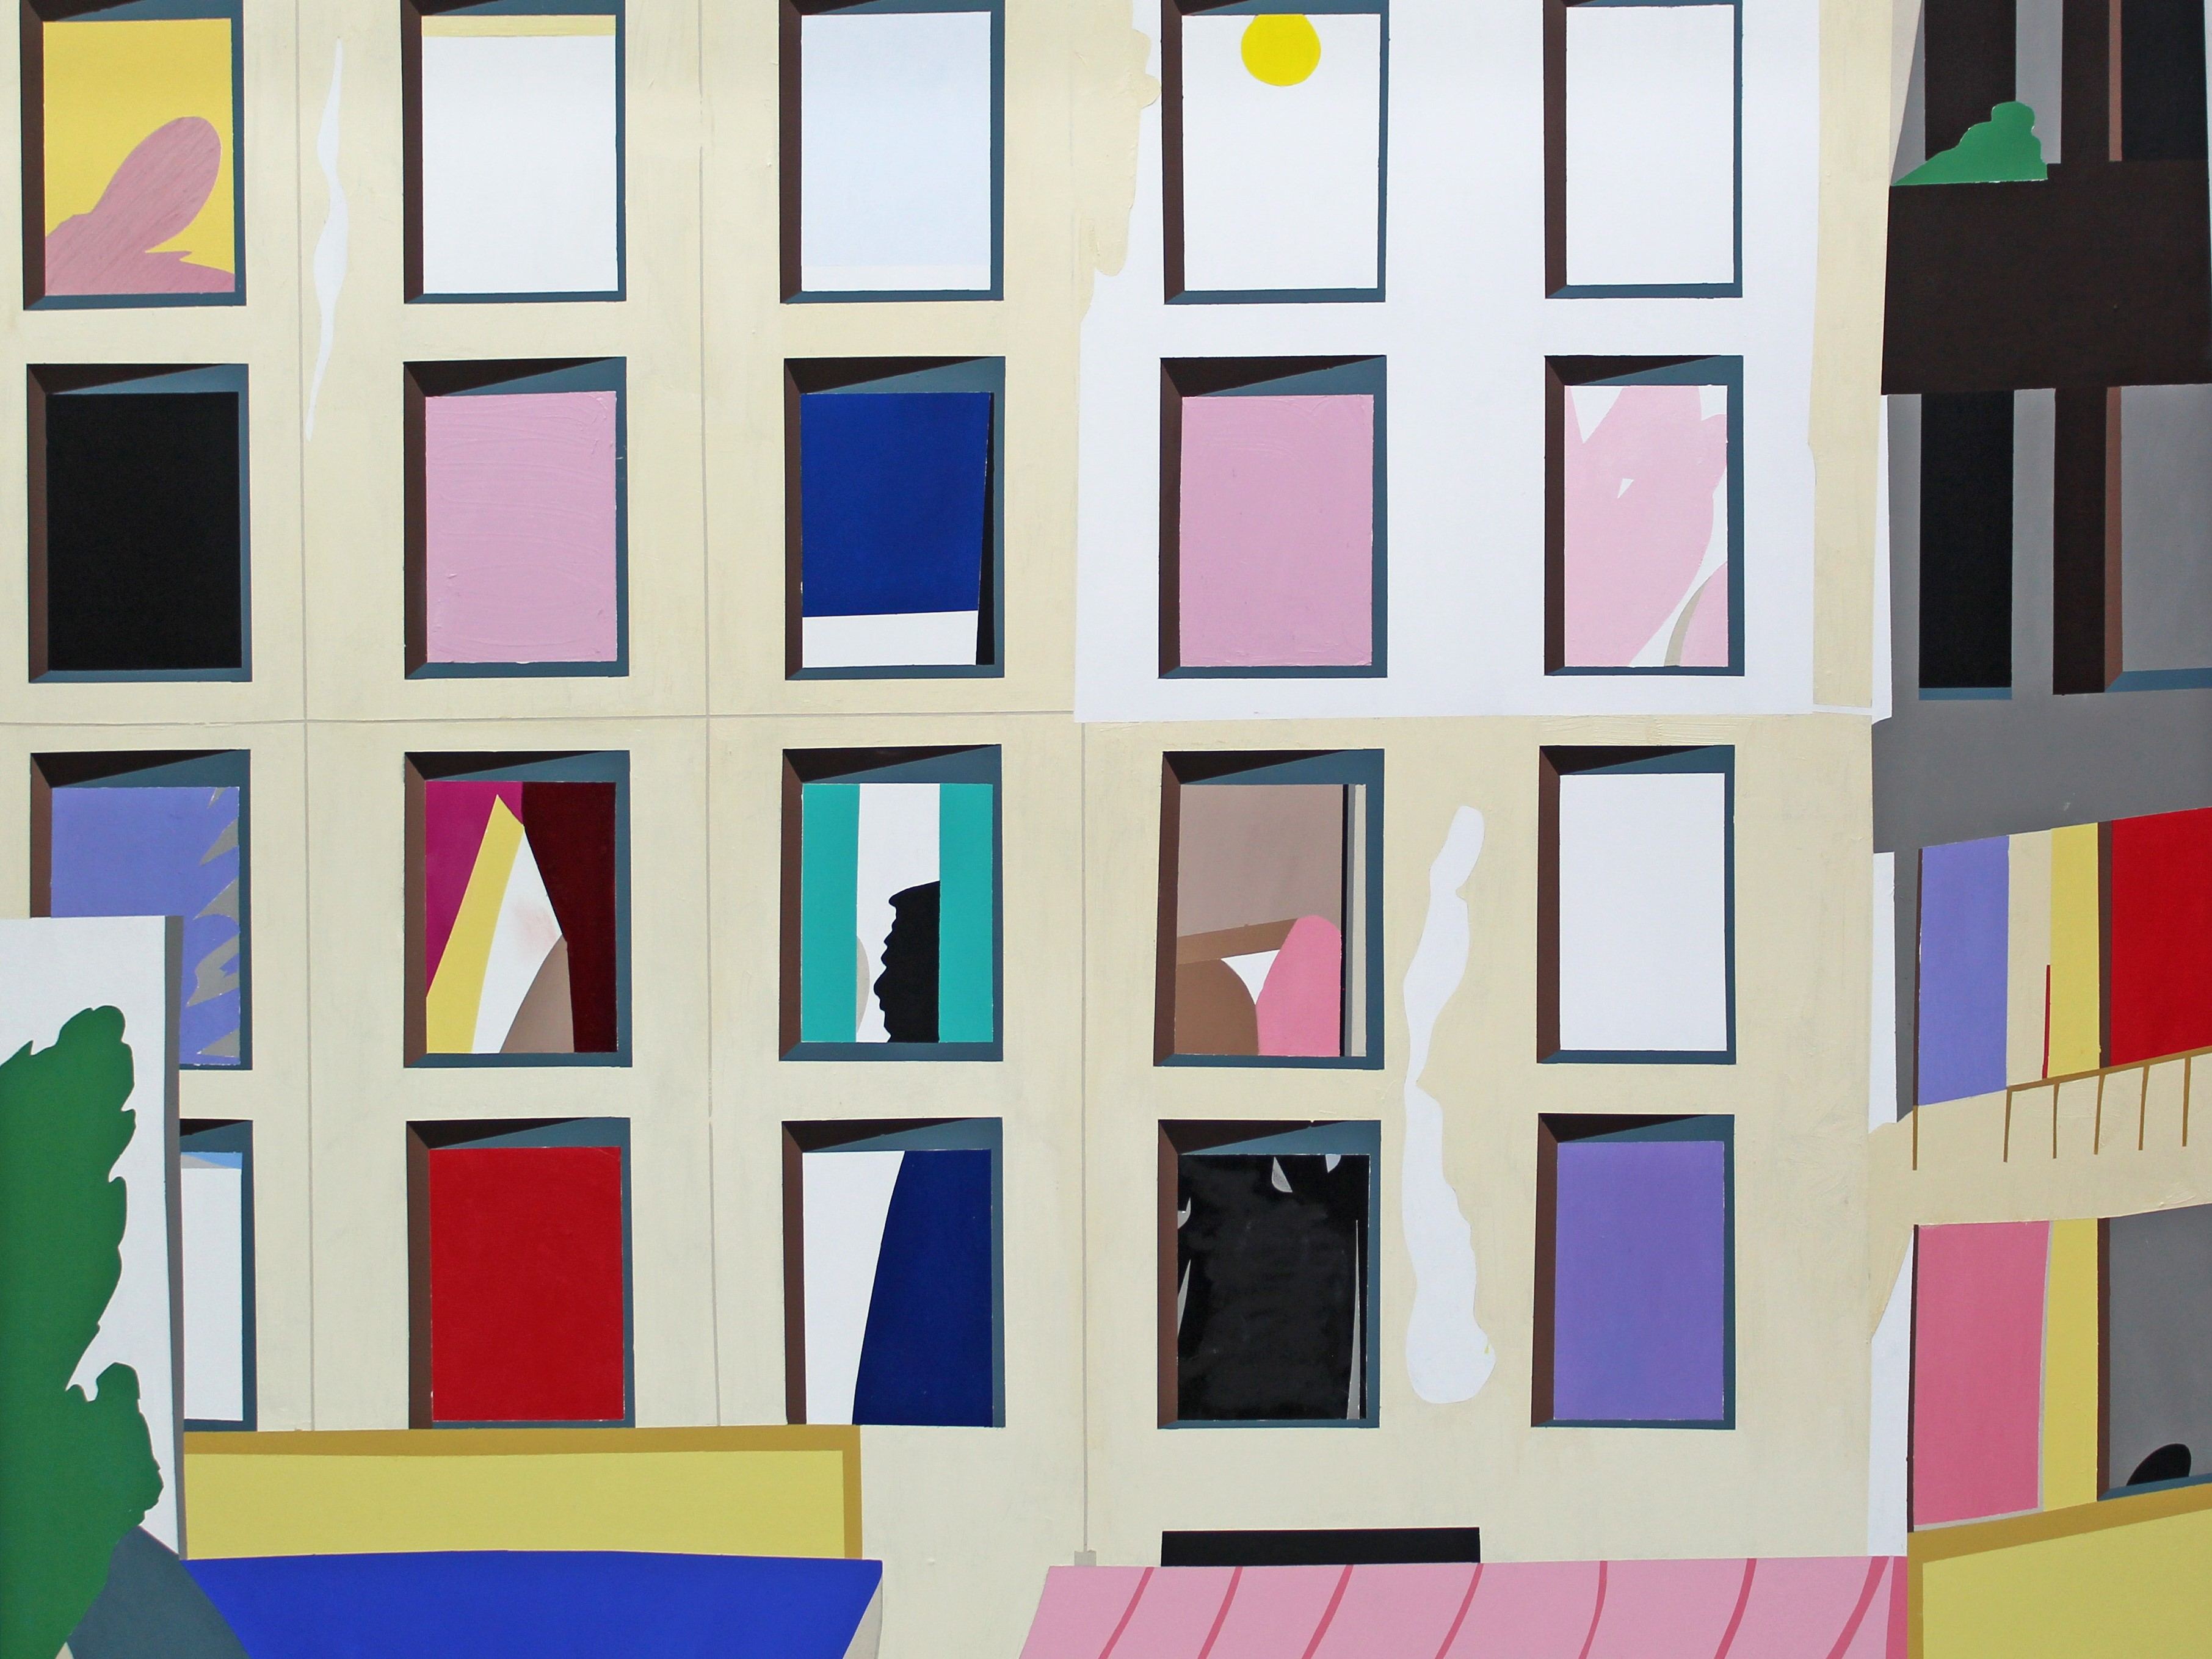 Jouni Toni | Apartment block, 2018